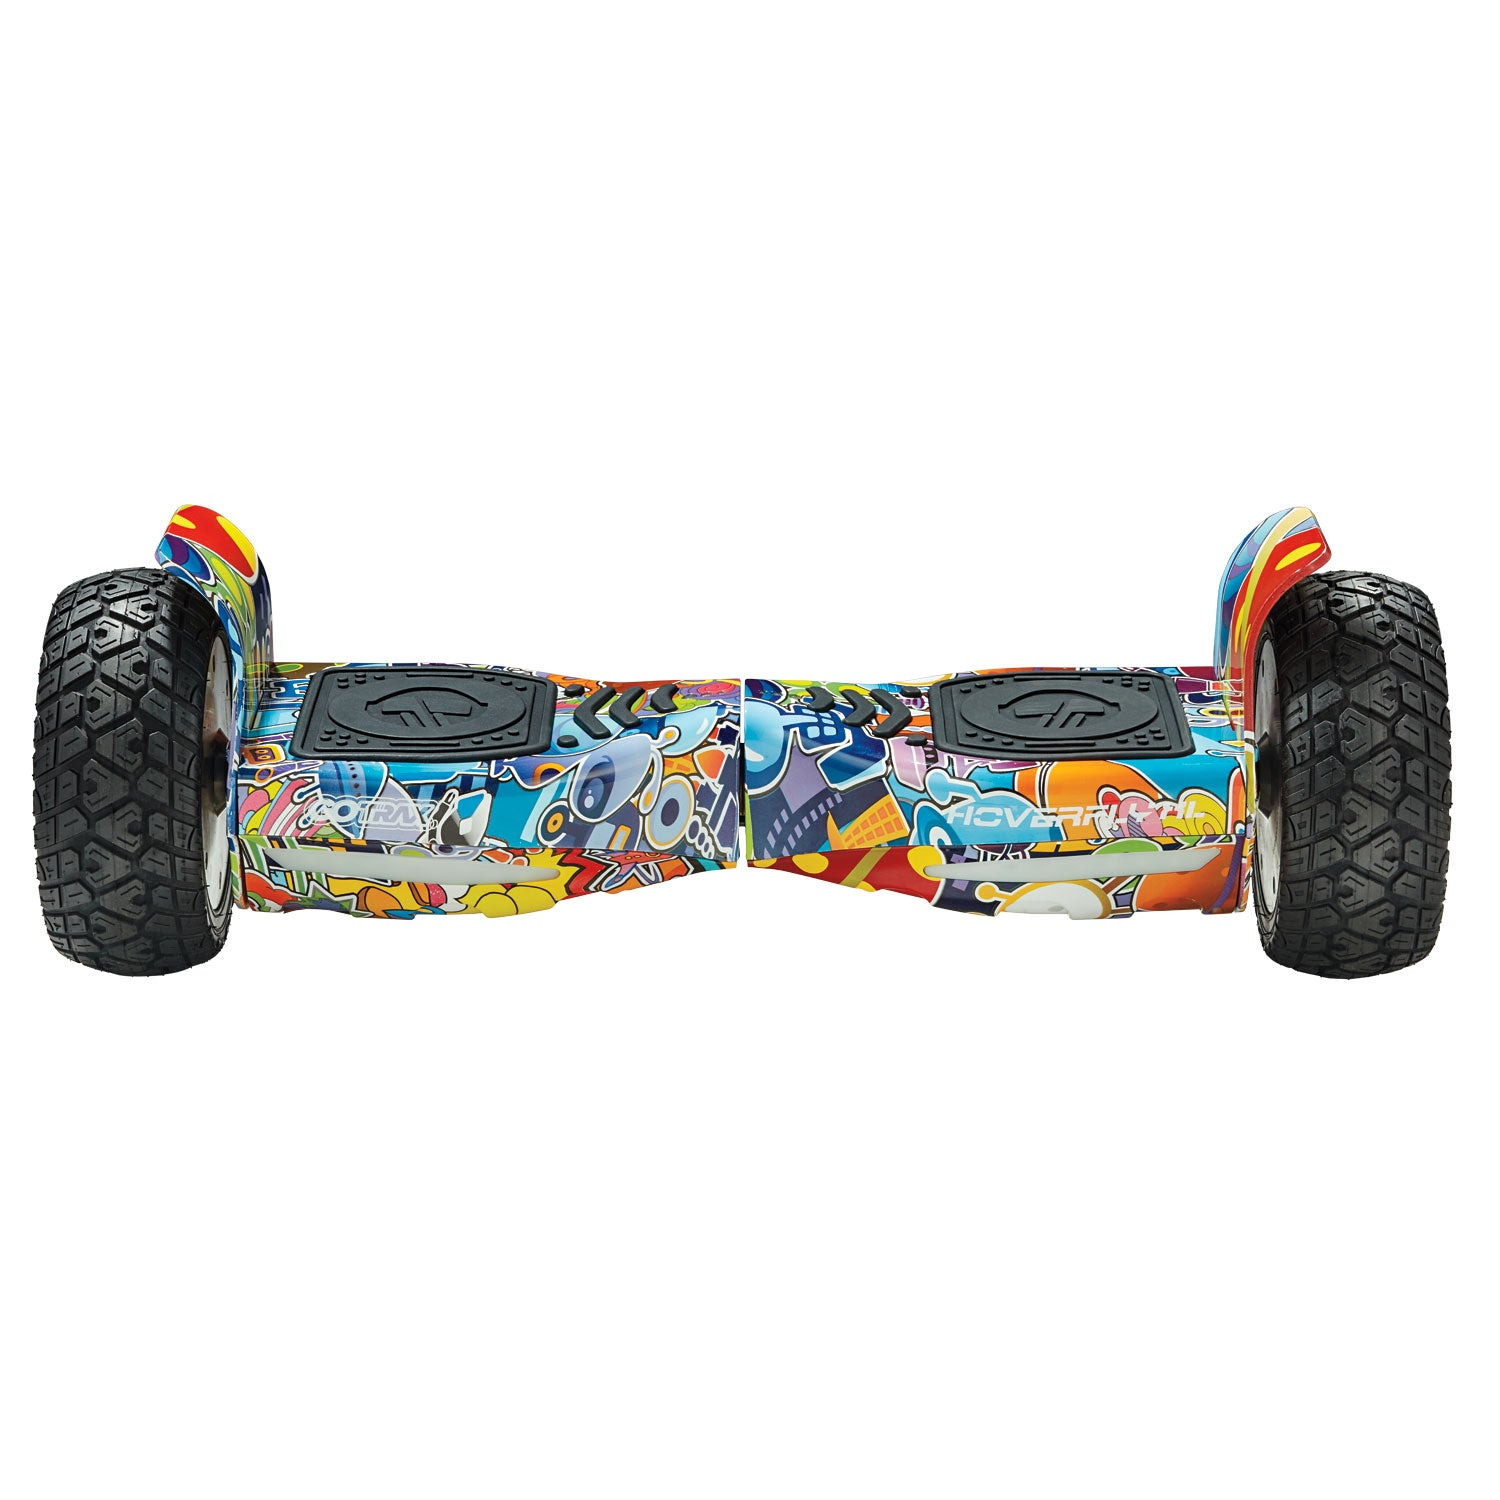 galaxy xl off road hoverboard Front